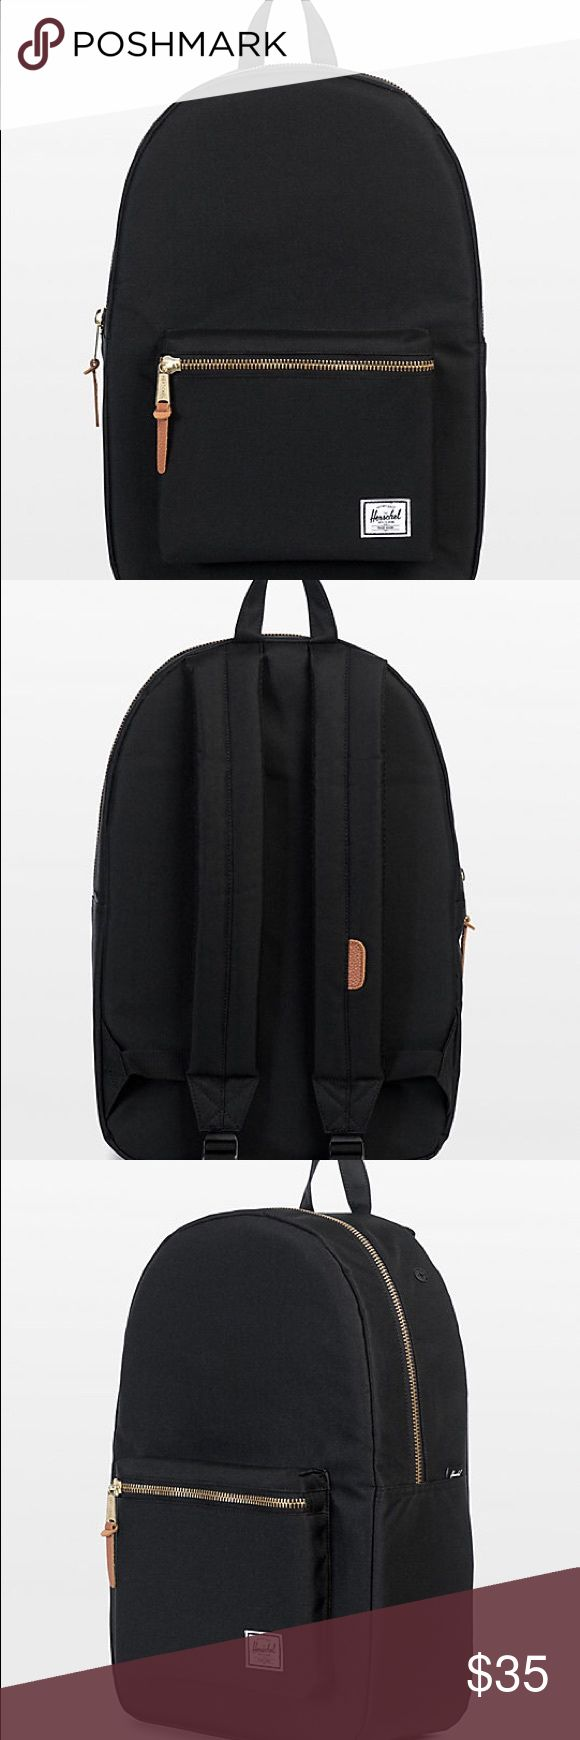 EUC Herschel Black Backpack / Bookbag EUC! Small dirt stain on the front that can be washed out. Zippers all work. Has a laptop sleeve. Ask questions! Bundle and save :) Herschel Supply Company Bags Backpacks